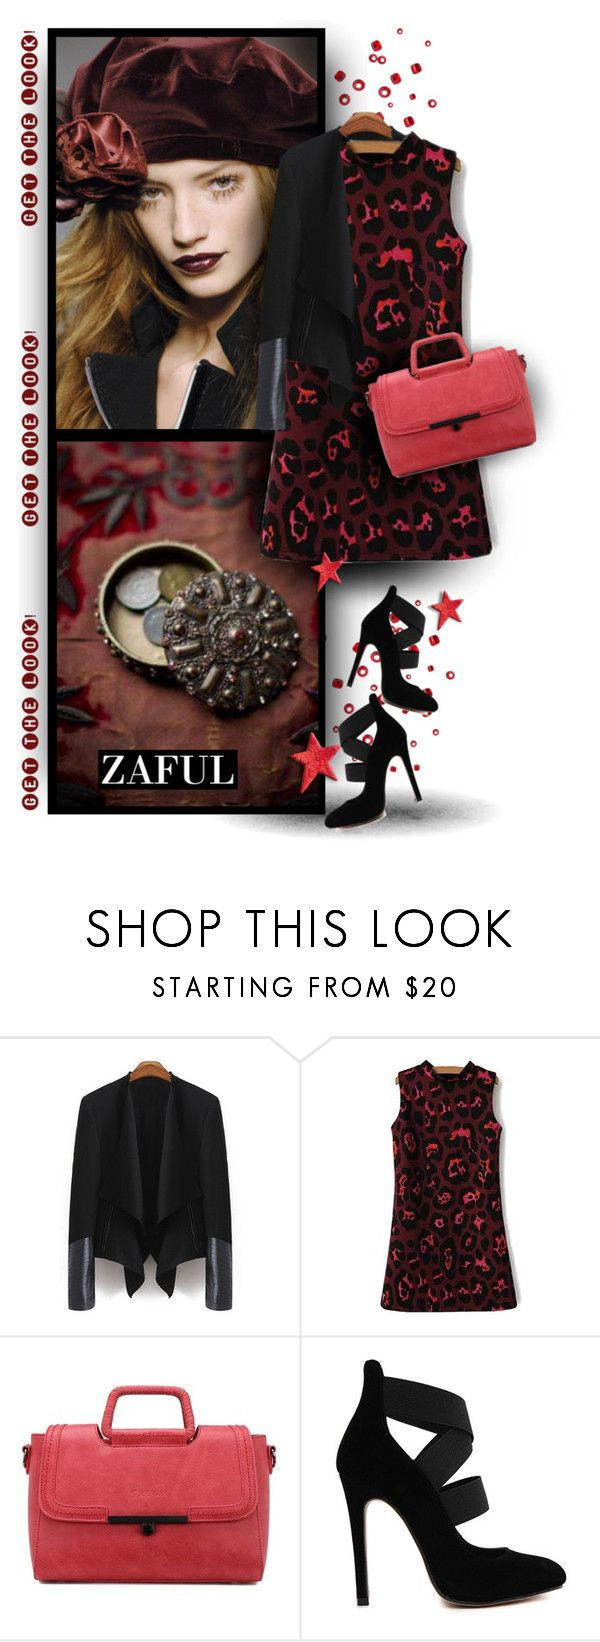 """""""Pure Elegance with Zaful Fashion"""" by christiana40 ❤ liked on Polyvore featuring women's clothing, women, female, woman, misses and juniors"""